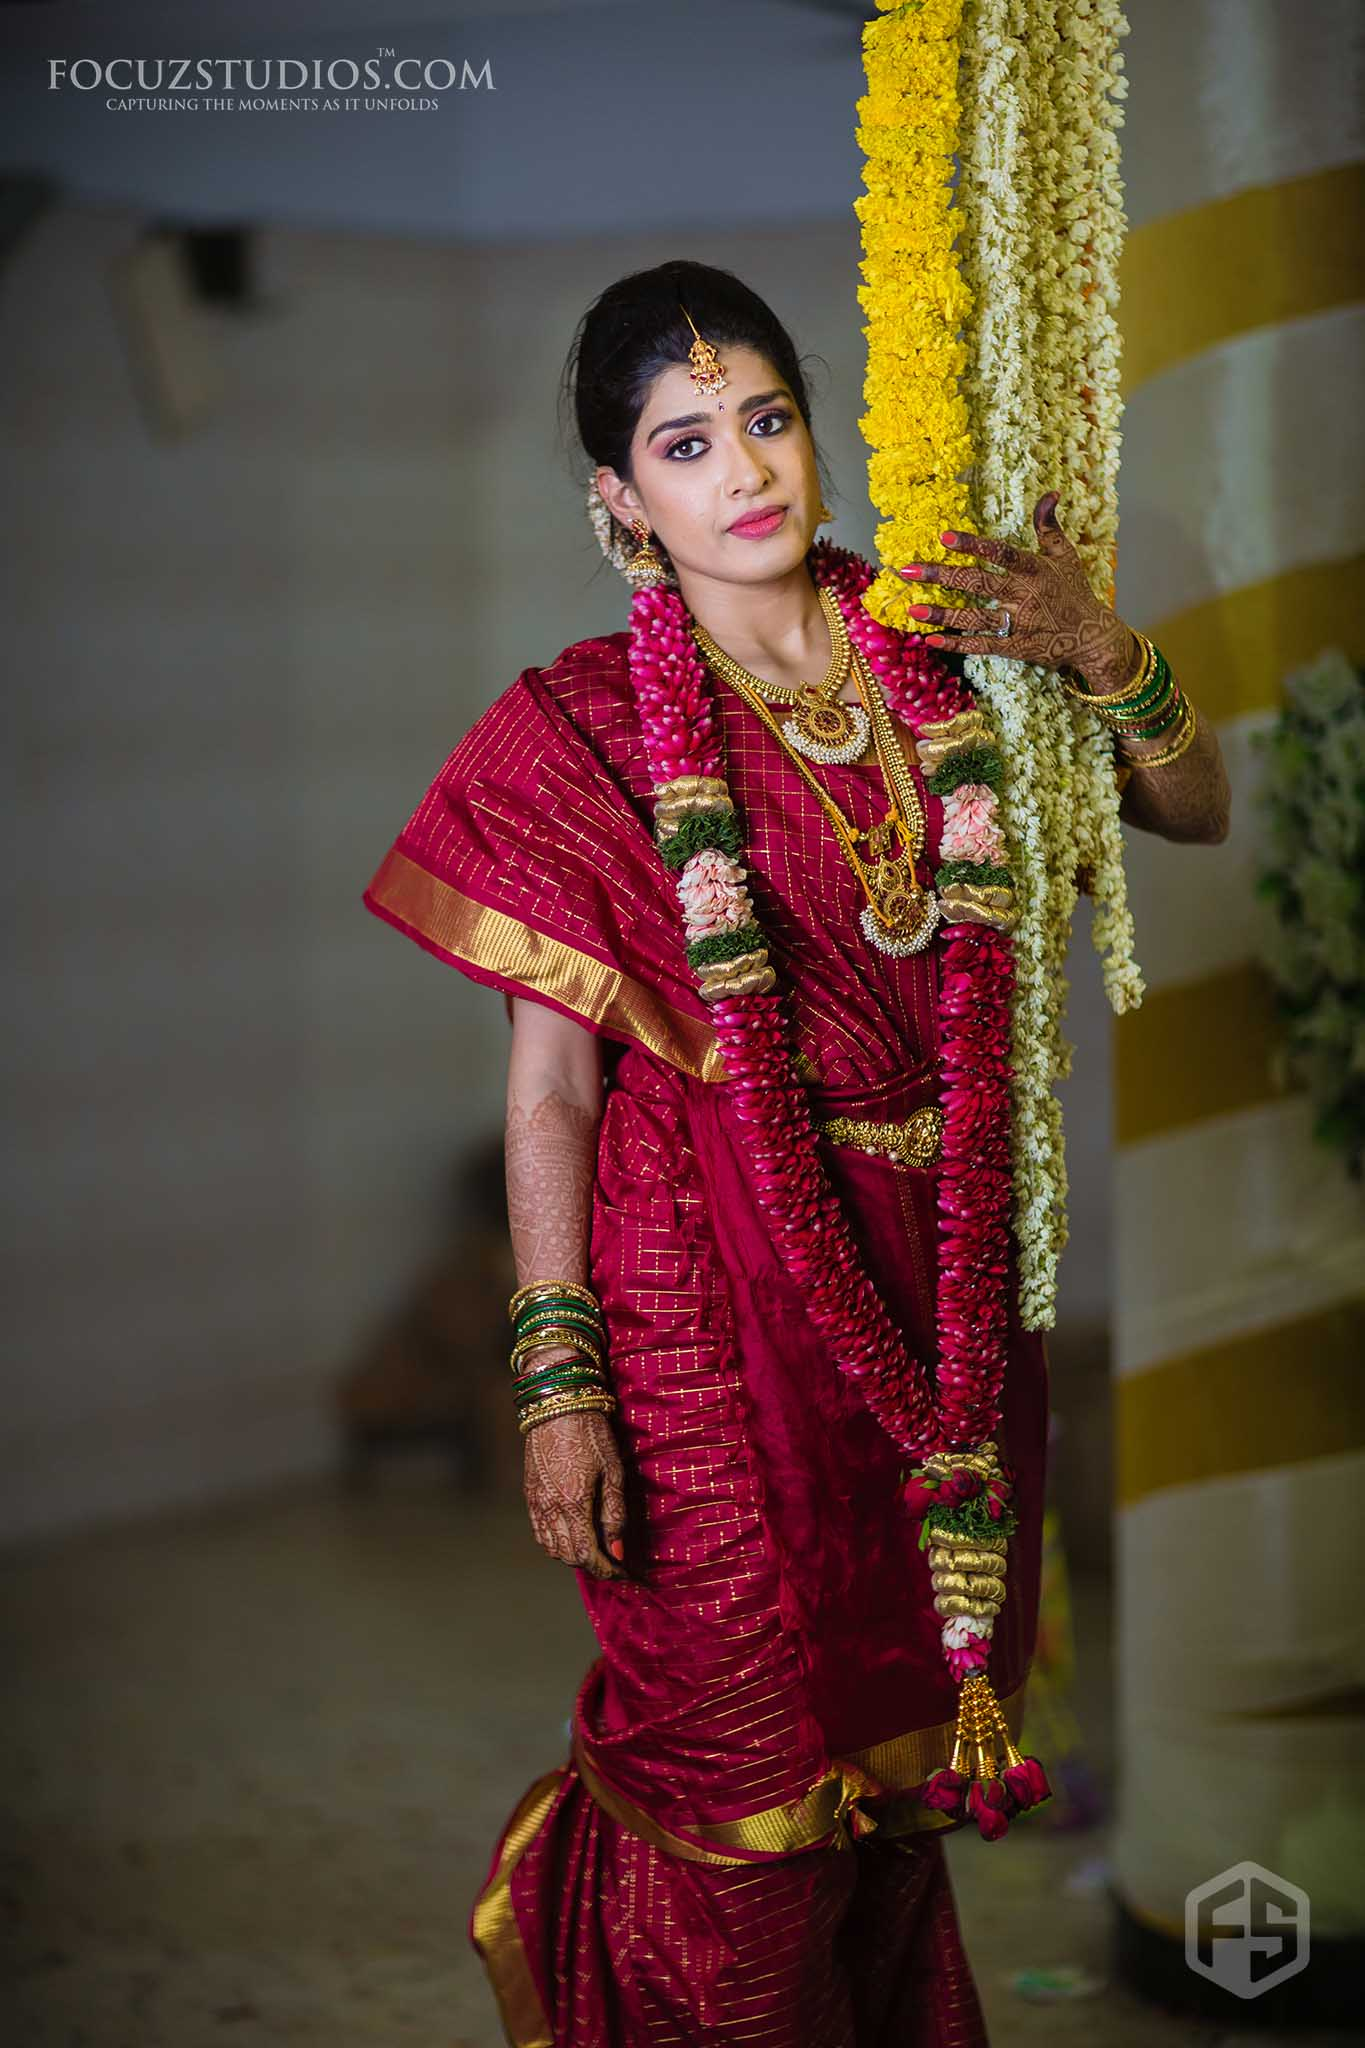 brahmin-wedding-photographers-focuz-studios10